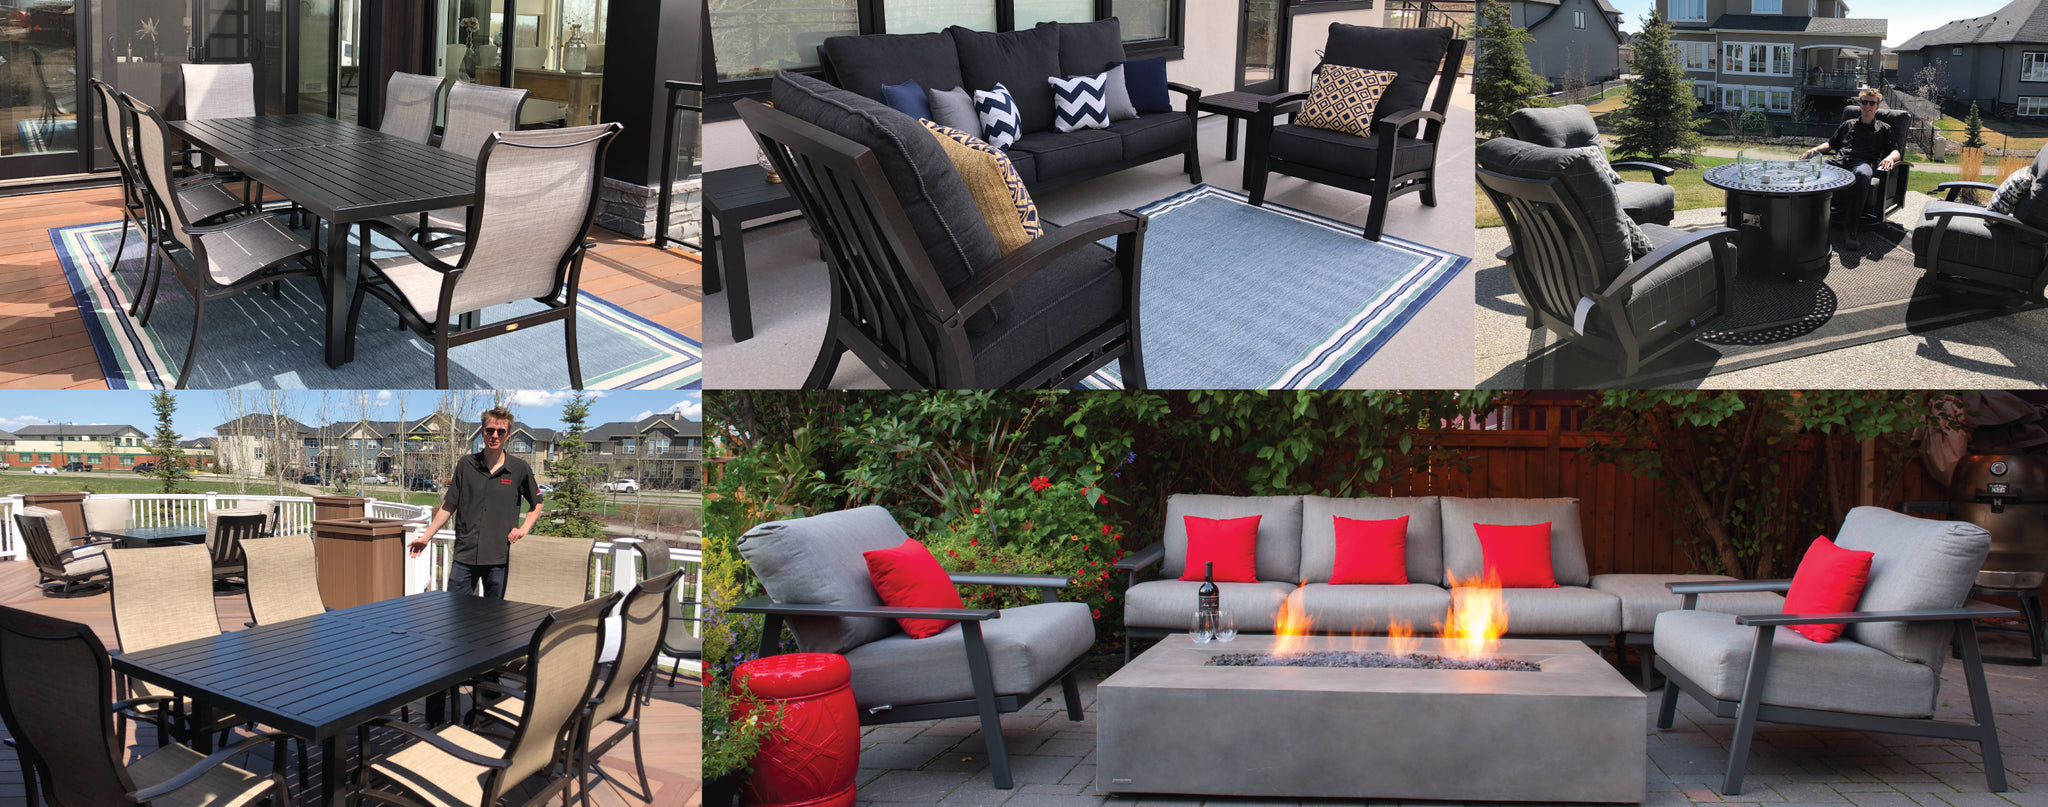 Mallin Outdoor Furniture Collage